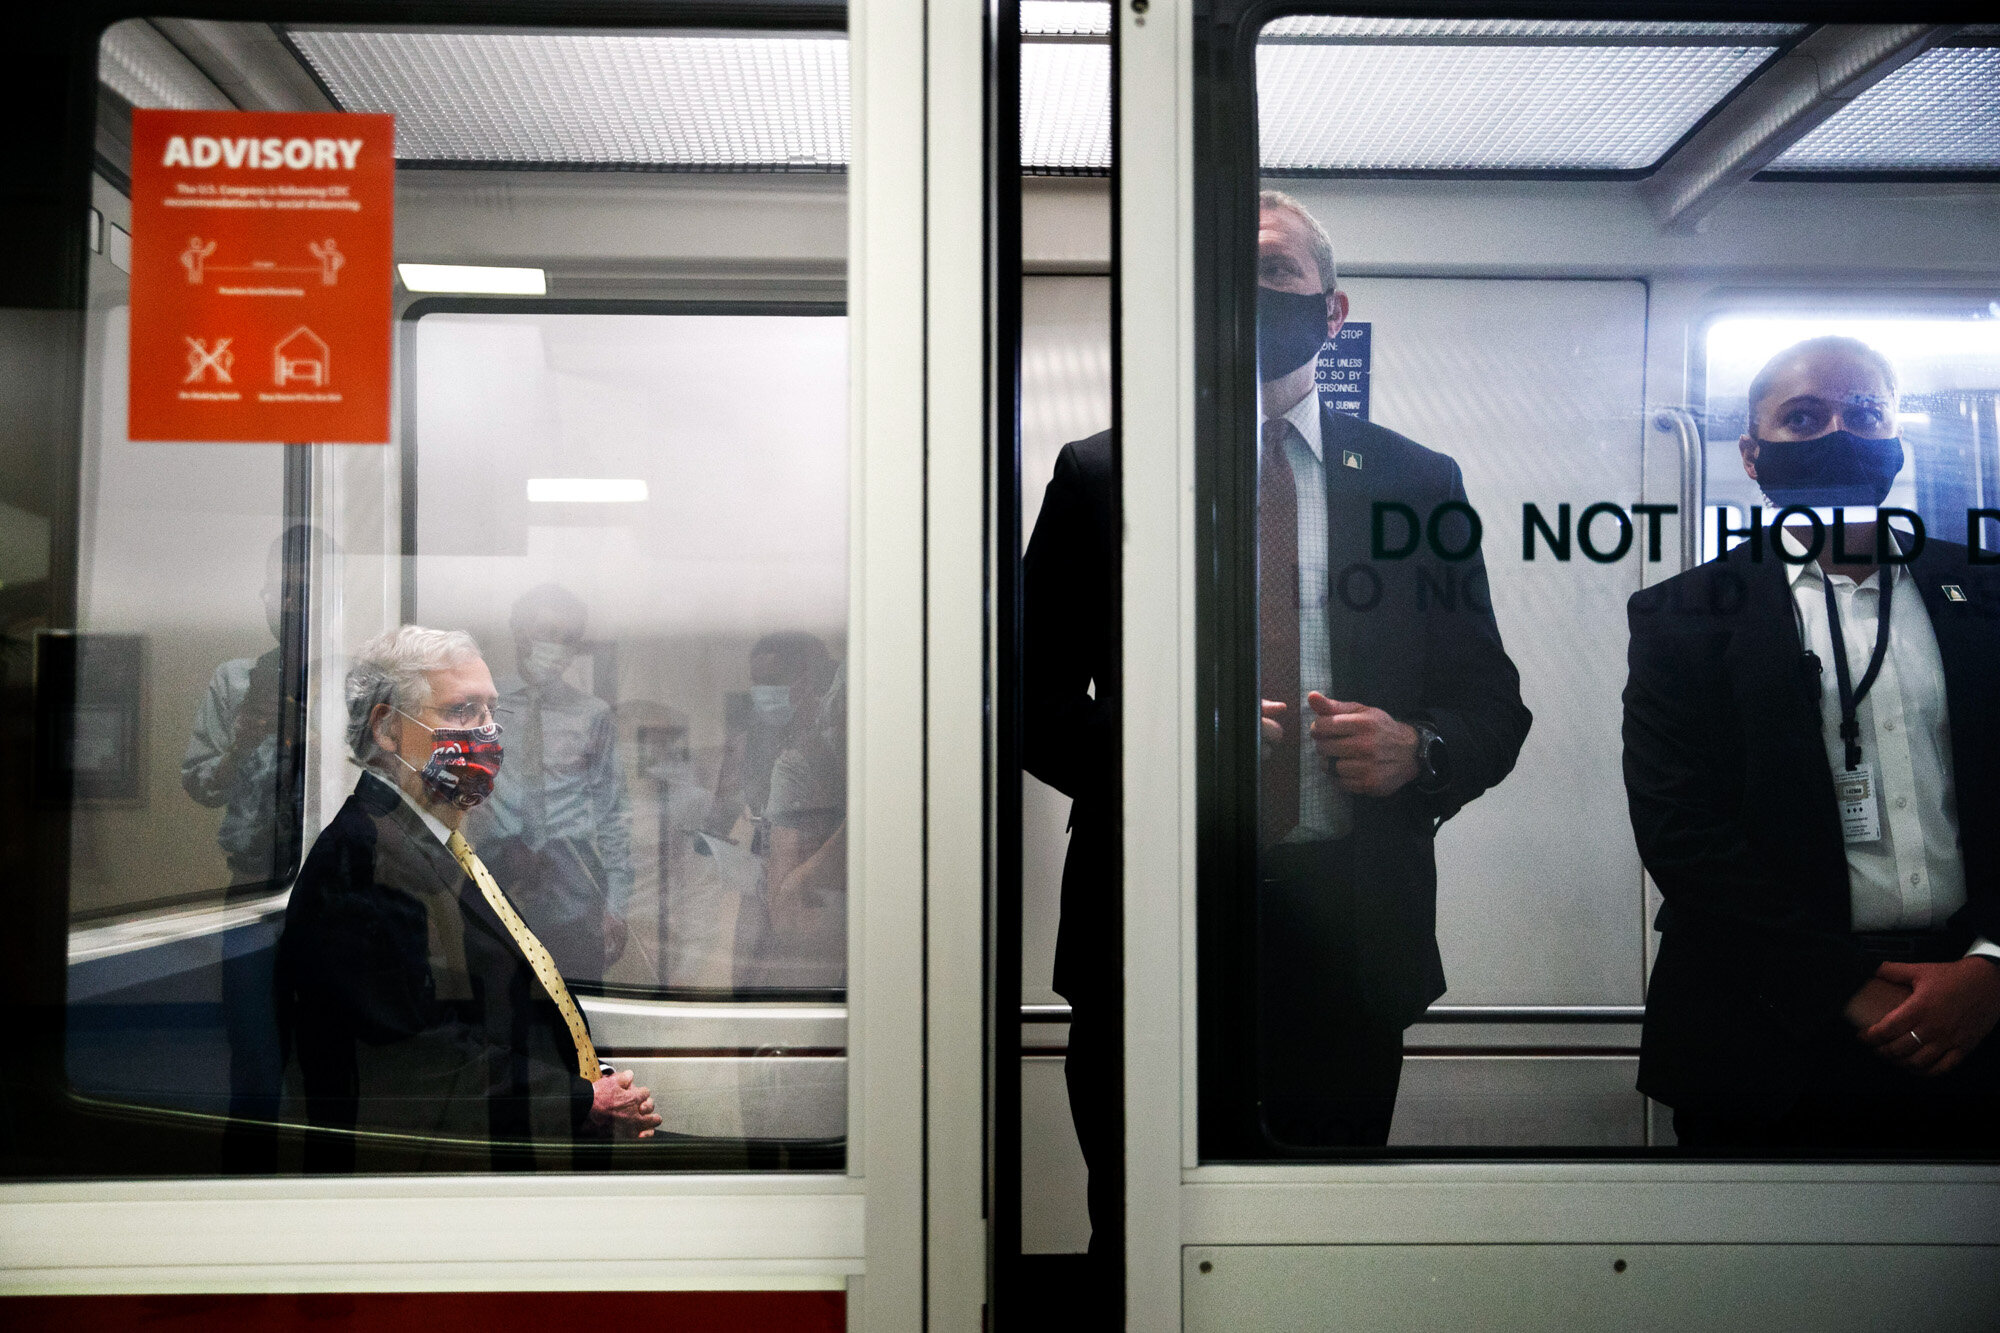 Senate Majority Leader Mitch McConnell of Kentucky, left, wears a mask for protection against the coronavirus, along with members of security, as he rides the Senate Subway between meetings on Capitol Hill in Washington on July 21, 2020. (AP Photo/Jacquelyn Martin)